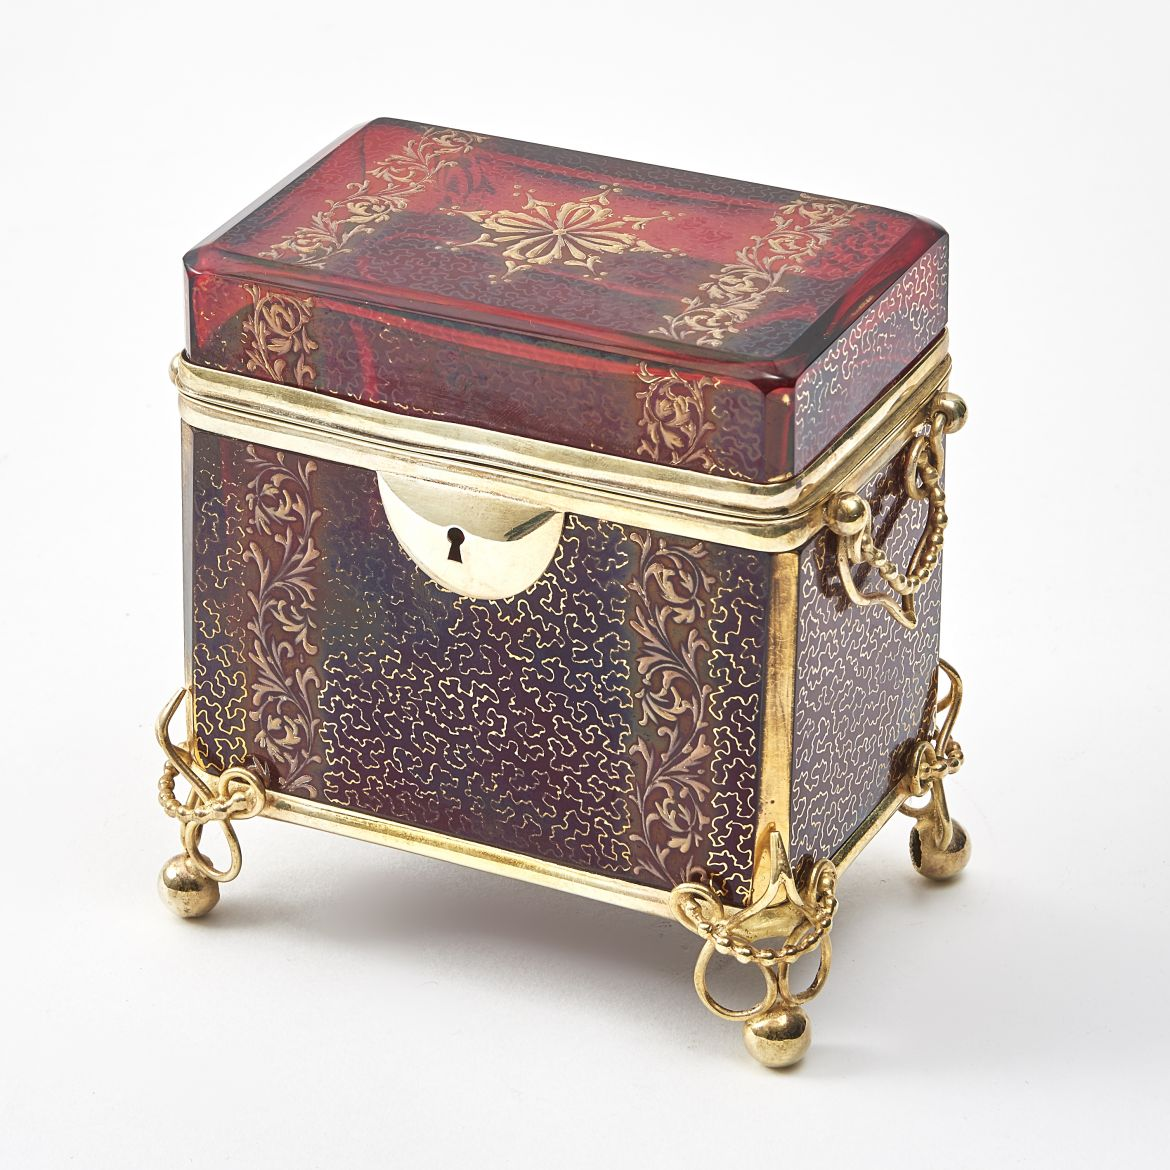 Bohemian Red Glass Box With Arabesque Gilt And Enamel Overlay